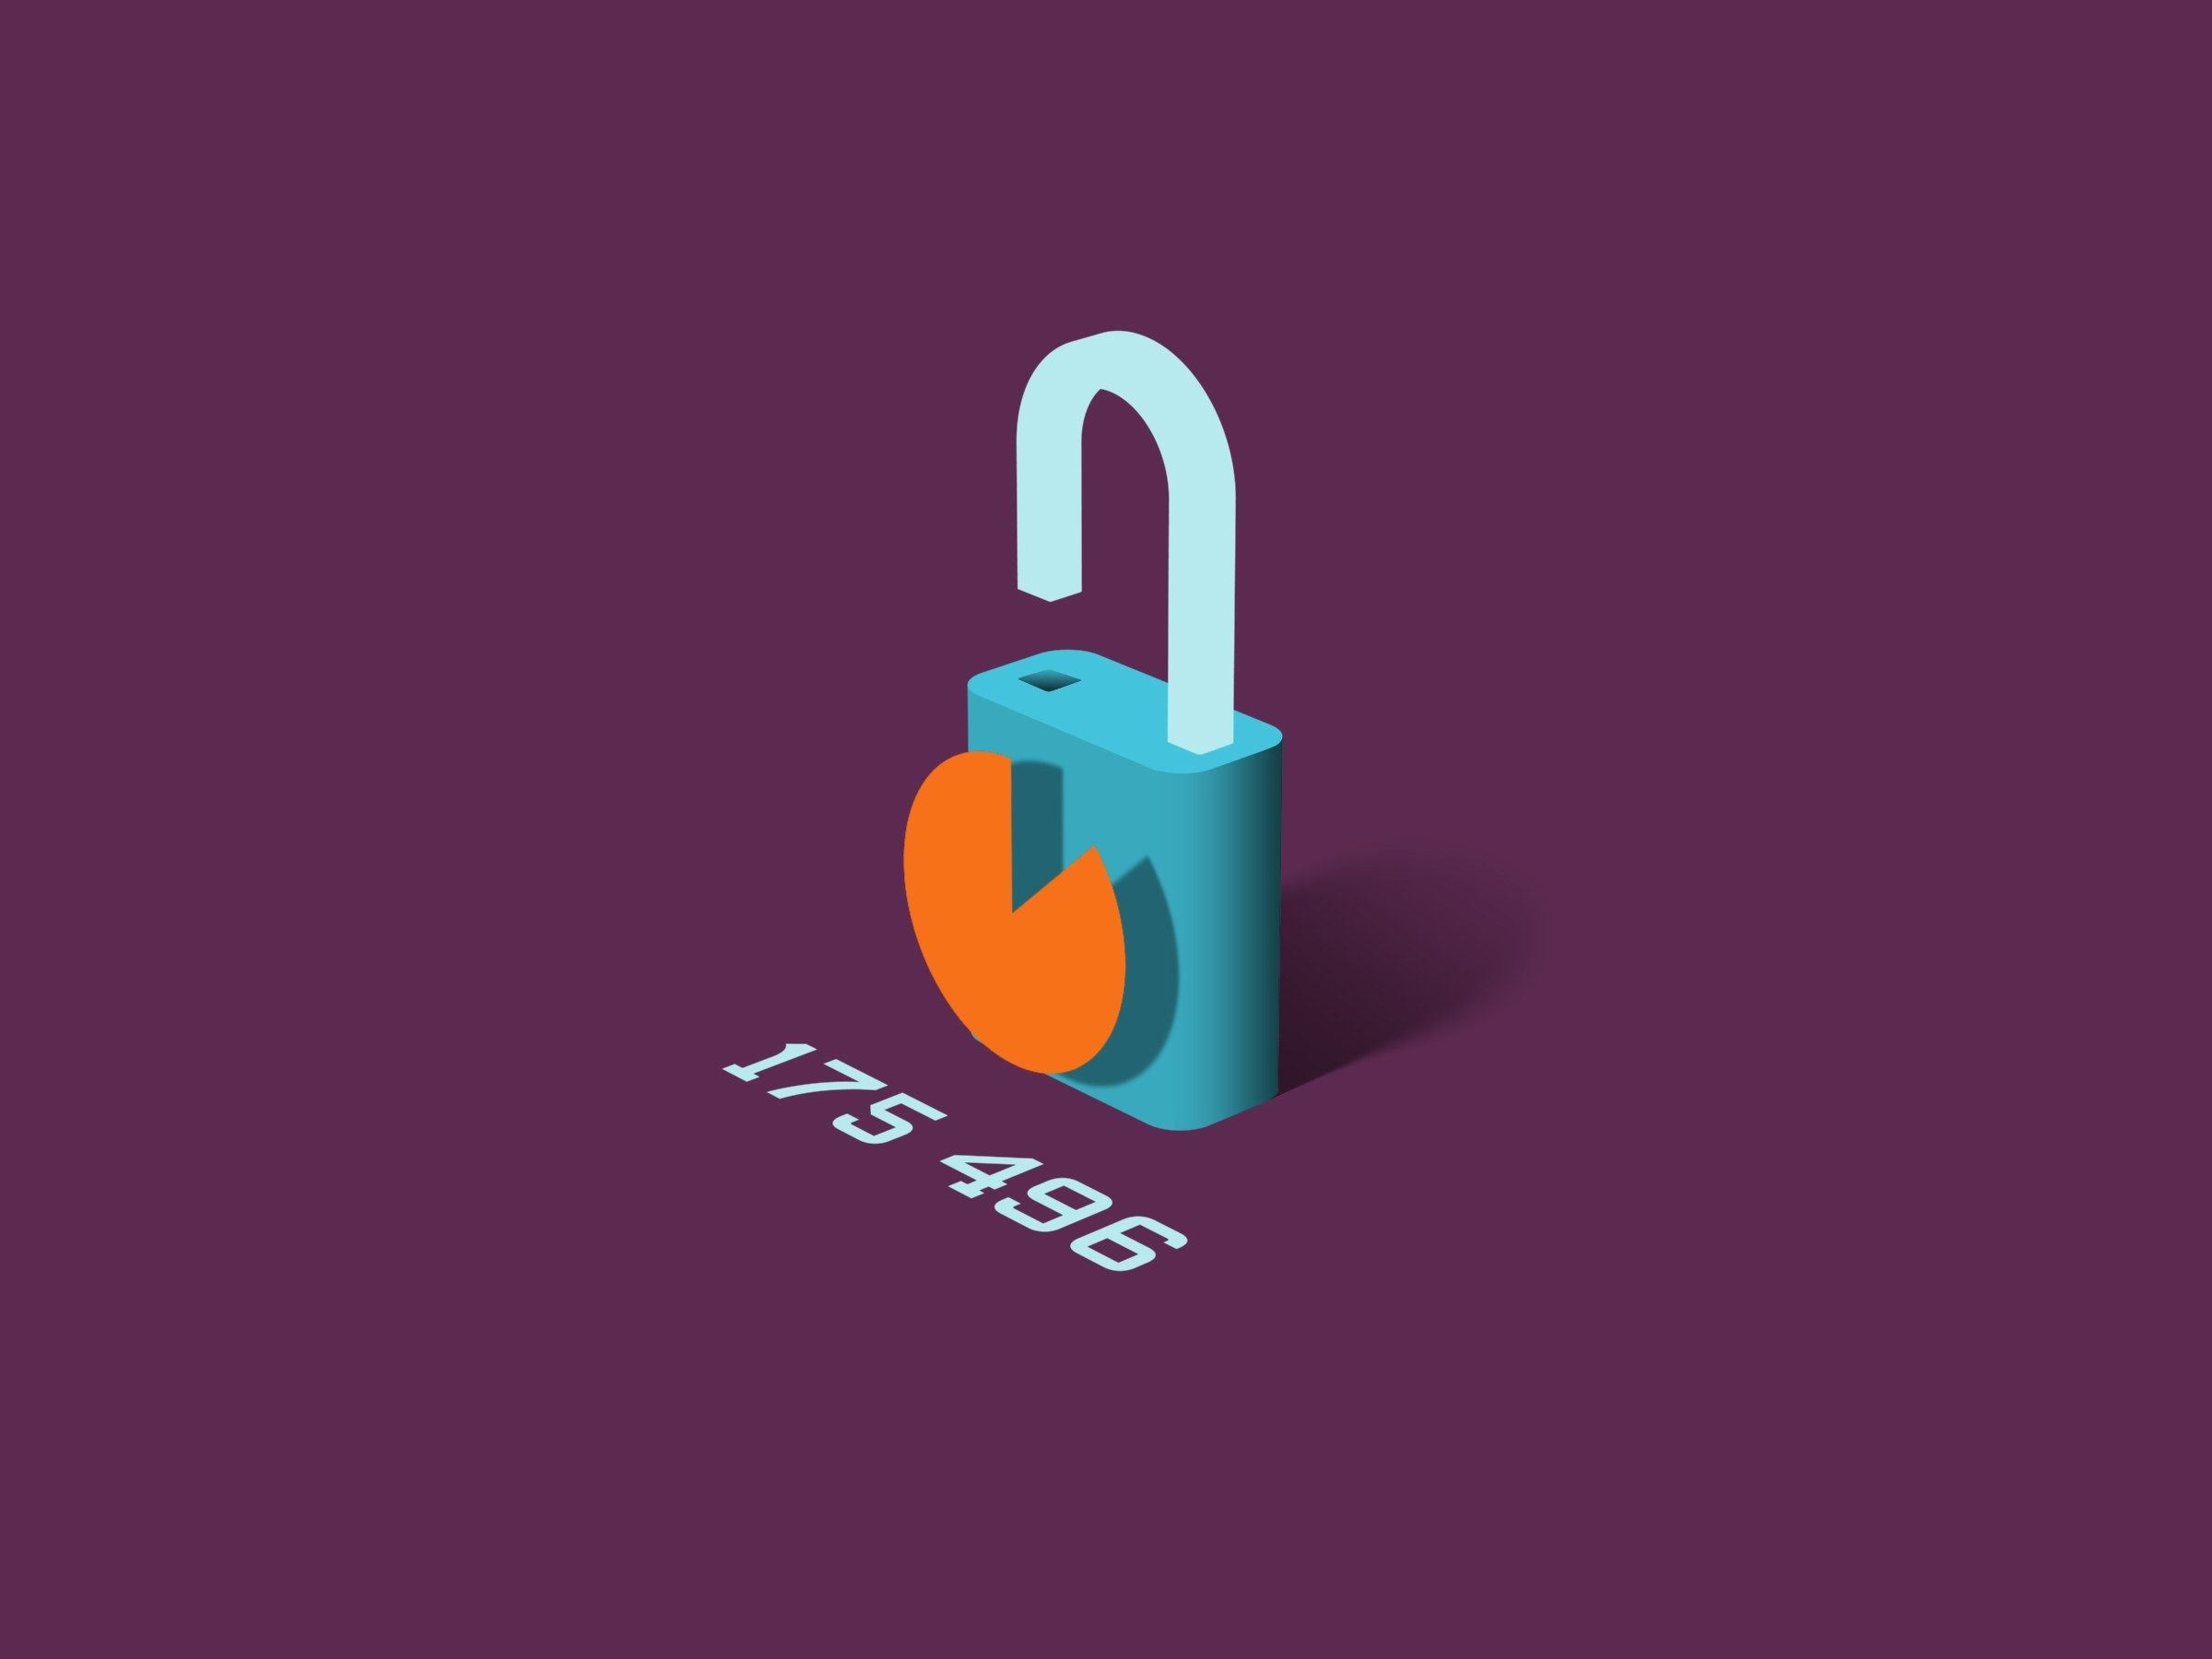 How to Secure Your Accounts With Better TwoFactor